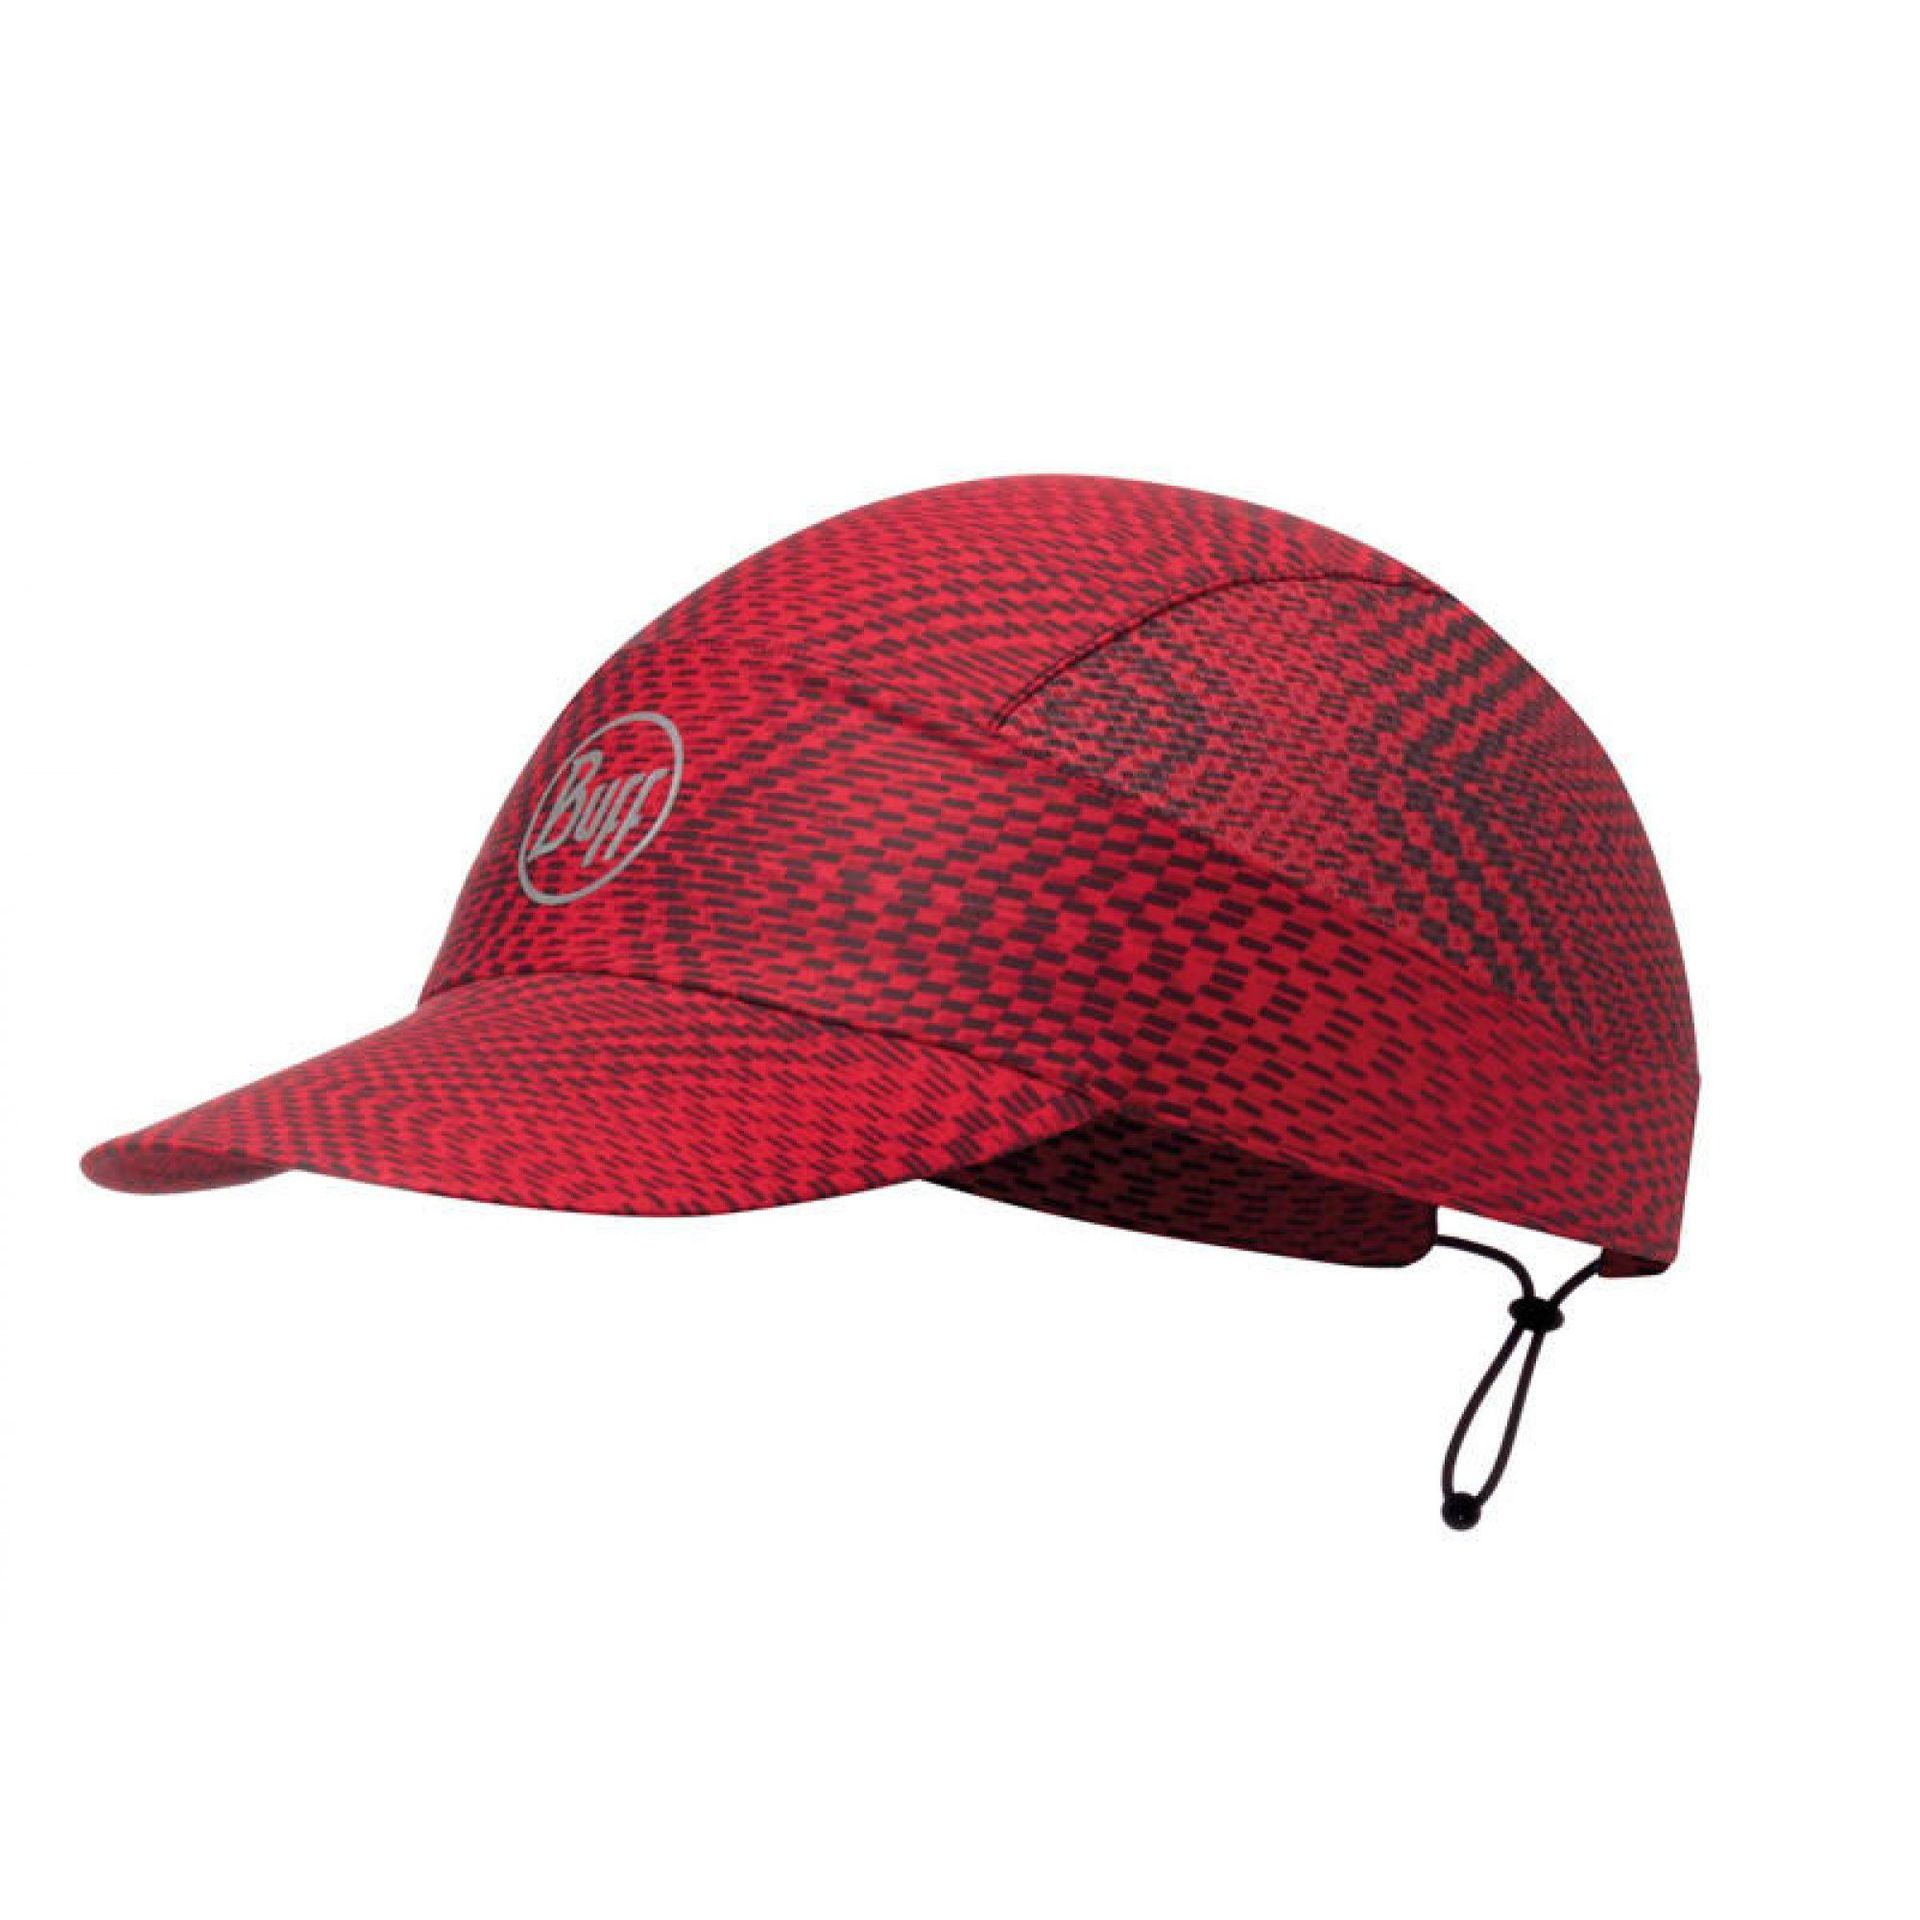 CZAPKA Z DASZKIEM BUFF PACK RUN CAP R-JAM RED